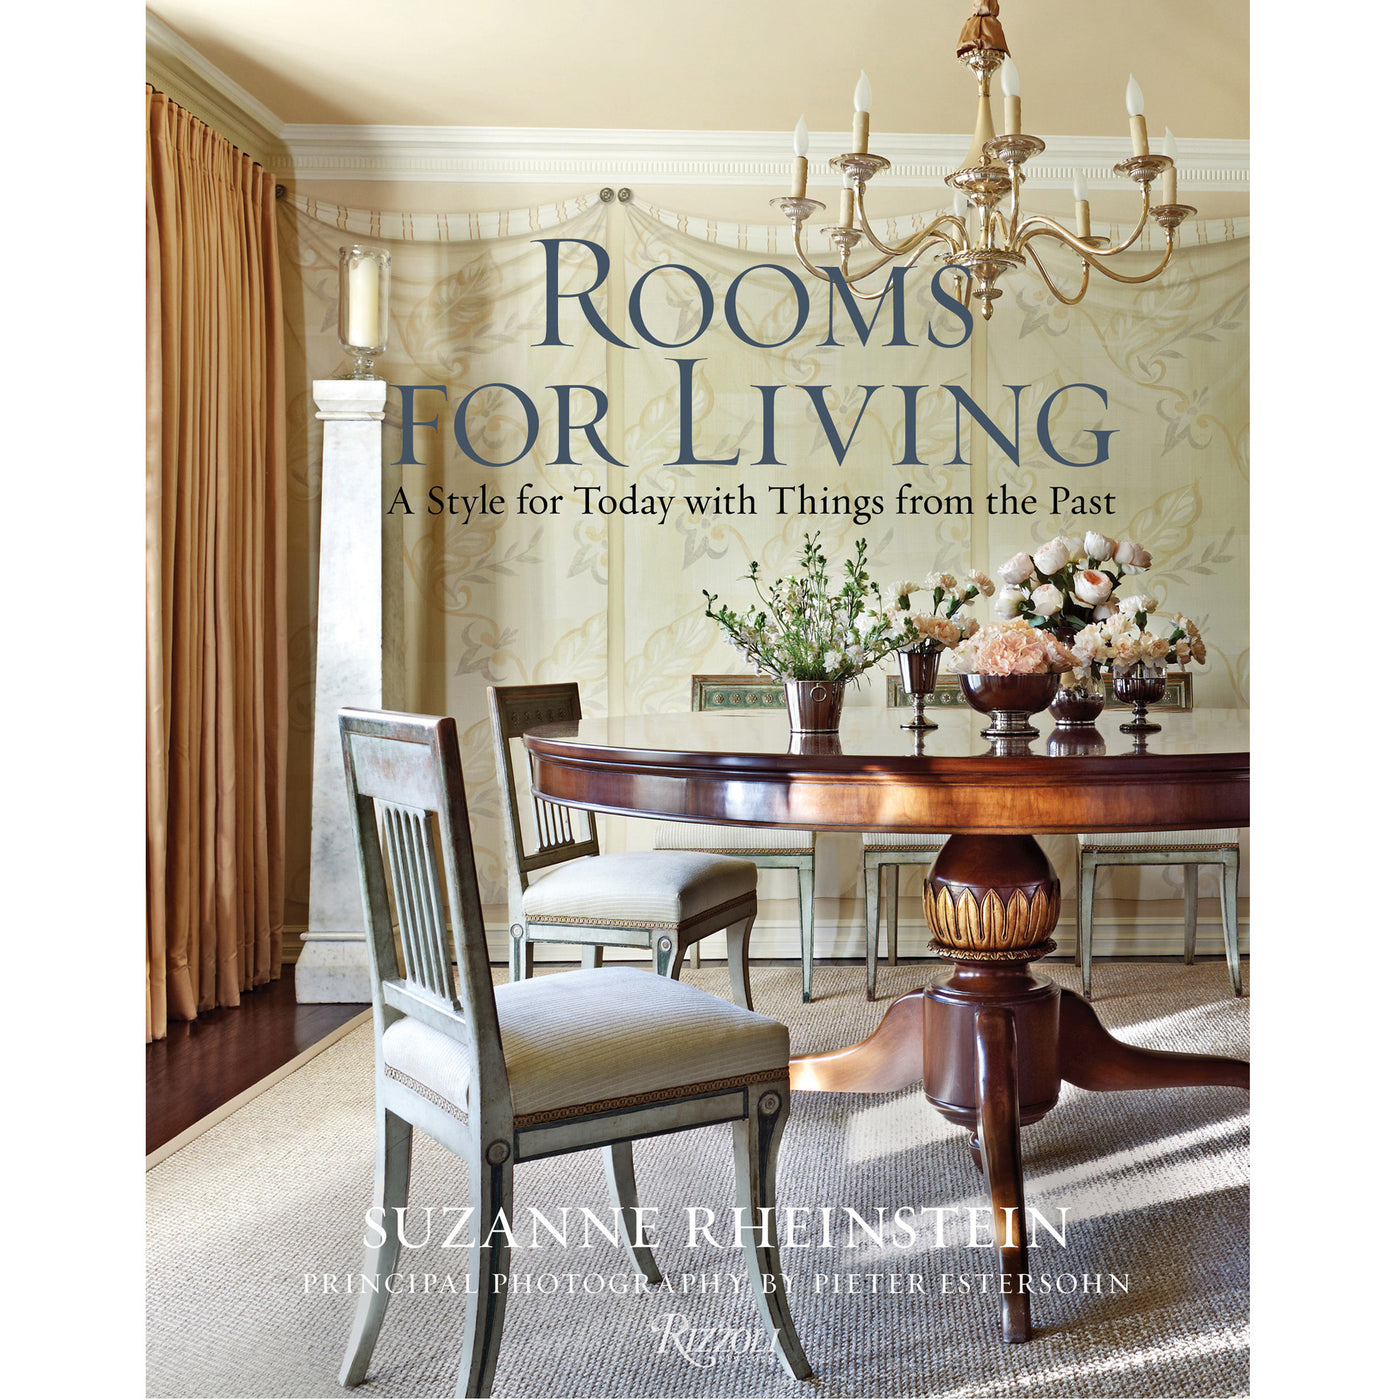 Rooms for Living: A Style for Today with Things from the Past - Coffee Table Book - Villa Decor Design & Style